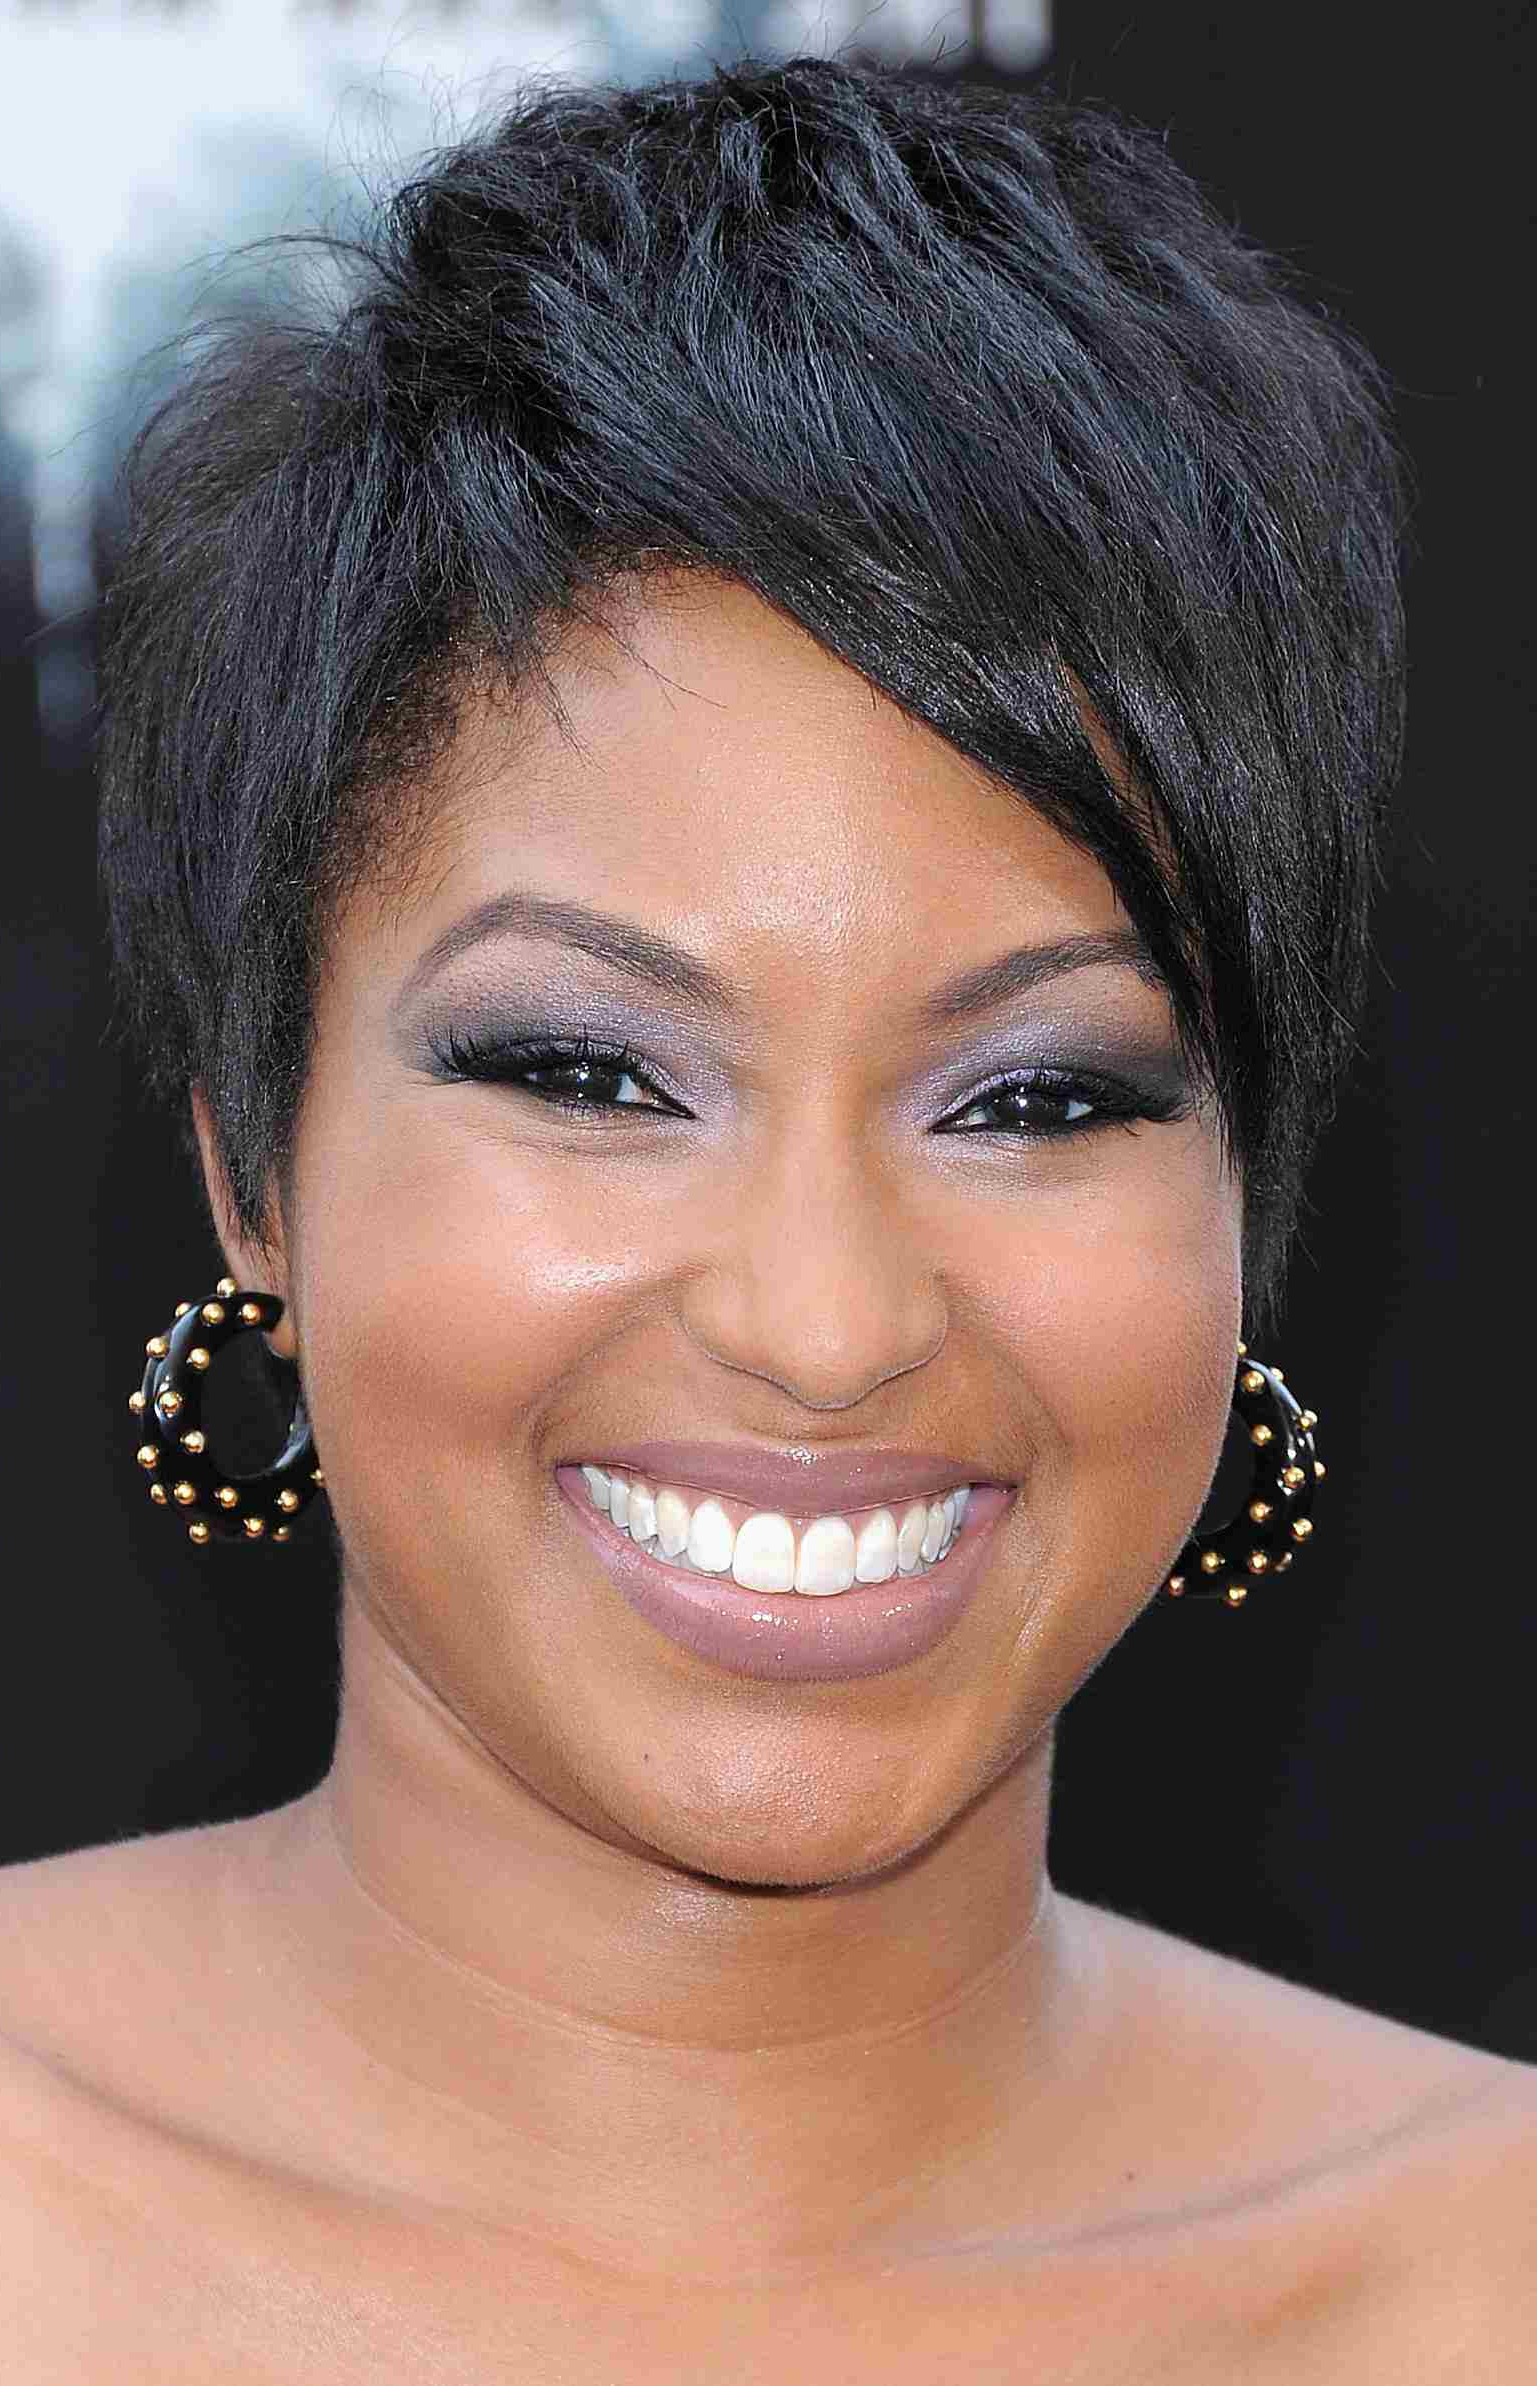 16 Flattering Short Hairstyles For Round Face Shapes Throughout Short Haircuts For Round Faces Black Hair (View 12 of 25)